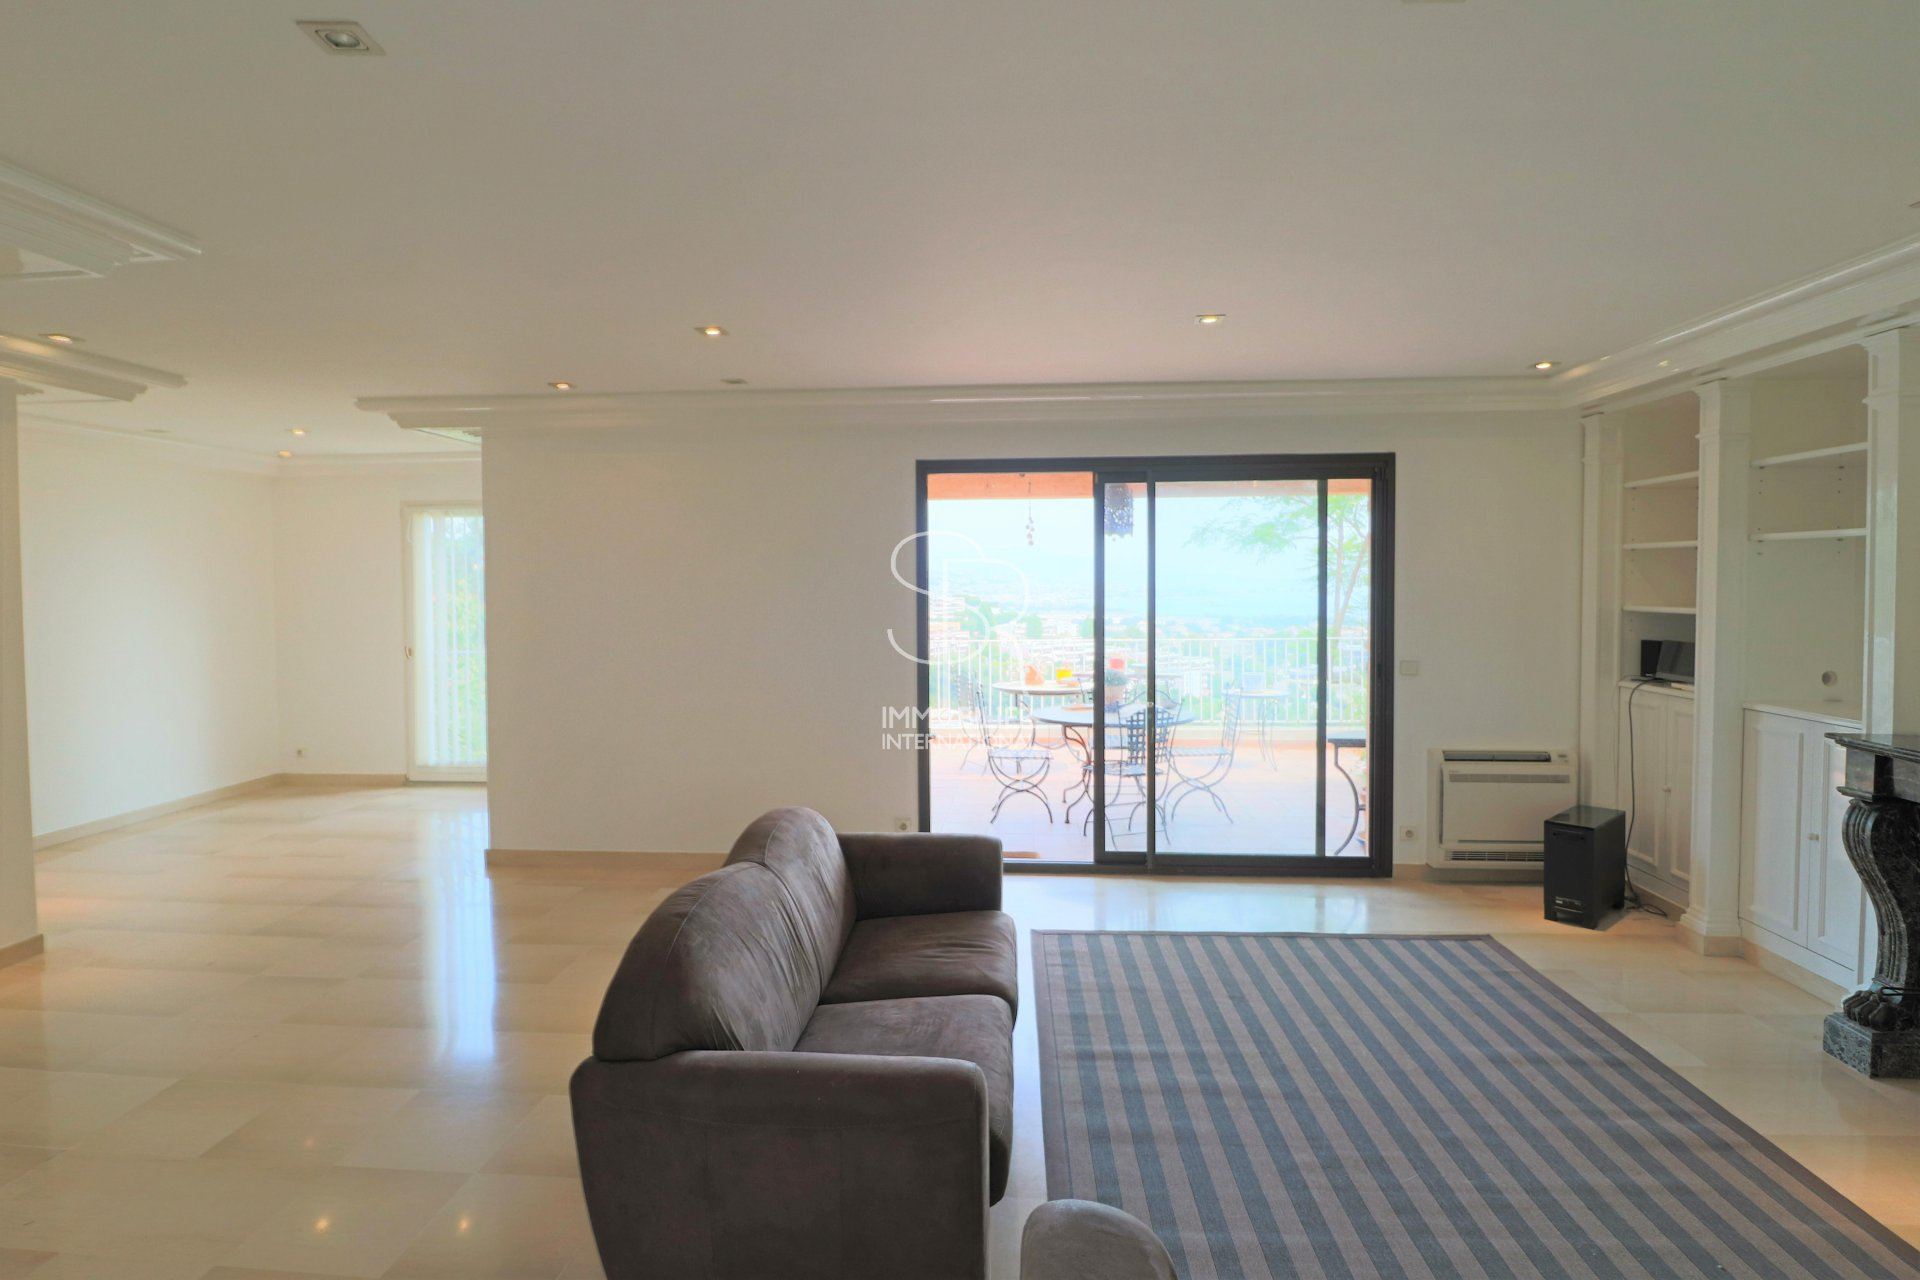 Villeneuve-Loubet - Hauts de Vaugrenier - Sea view 3 bedroom apartment